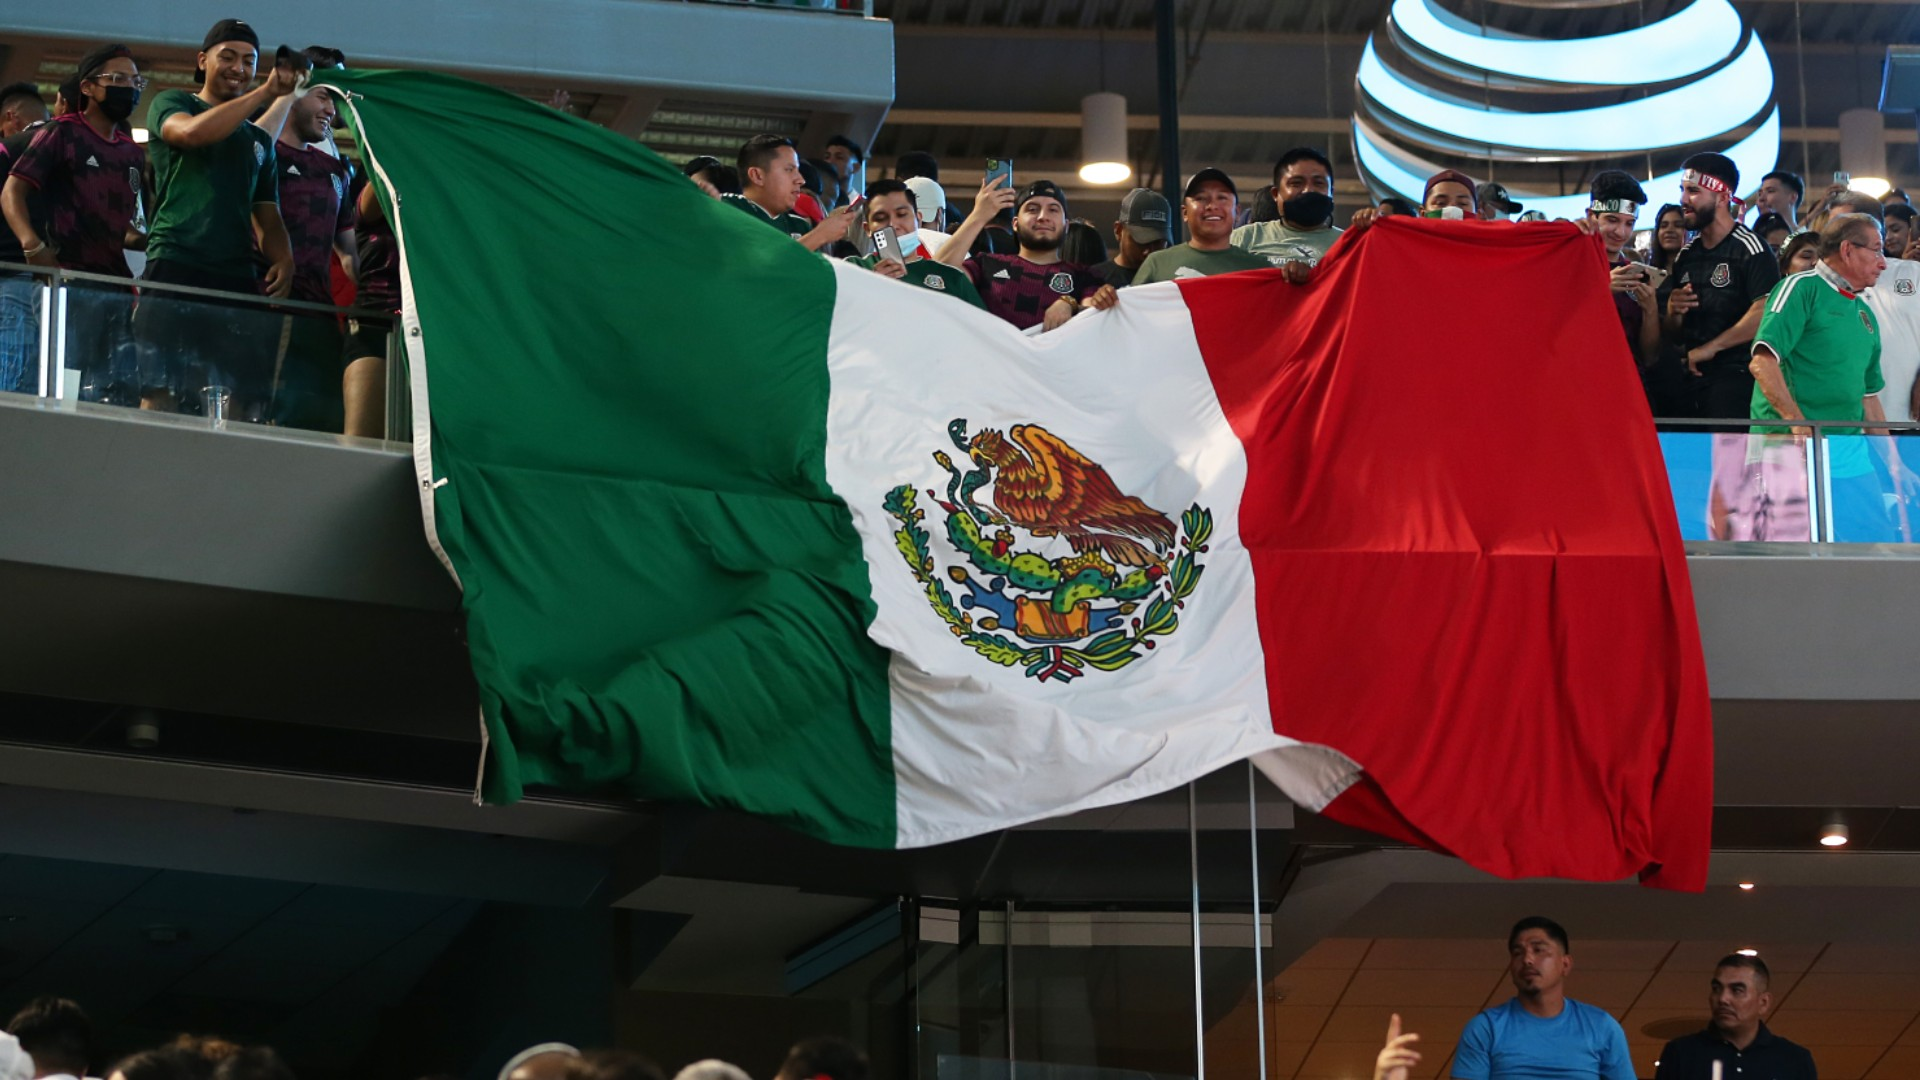 Explaining the homophobic chant that has Mexico's soccer federation in scorching water with FIFA